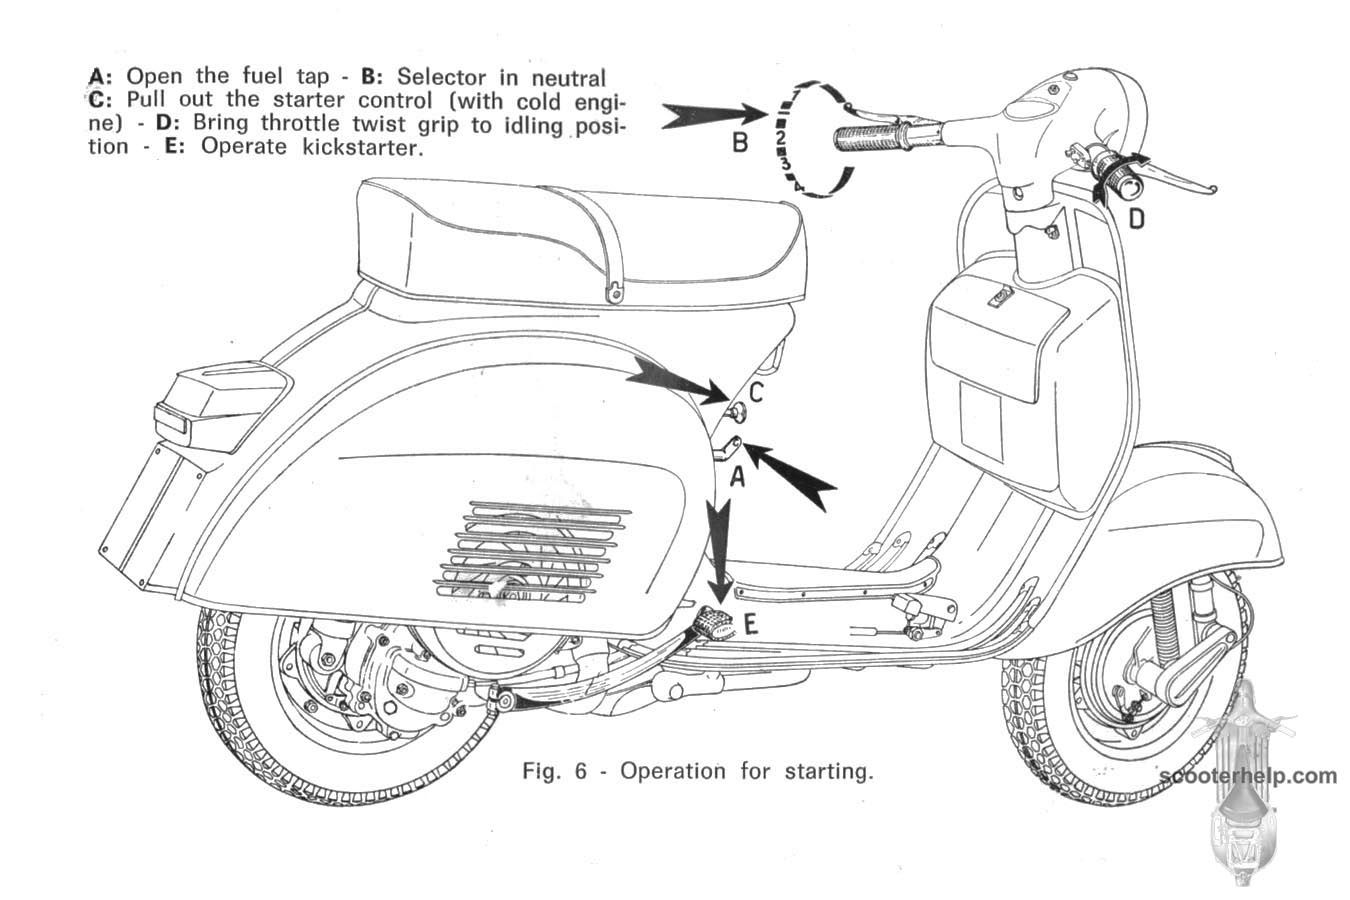 vespa rally 200 vse1t owner s manual pinterest vespa rally rh pinterest ca vespa owners manual 95 octaneis that ron vespa owners manual download